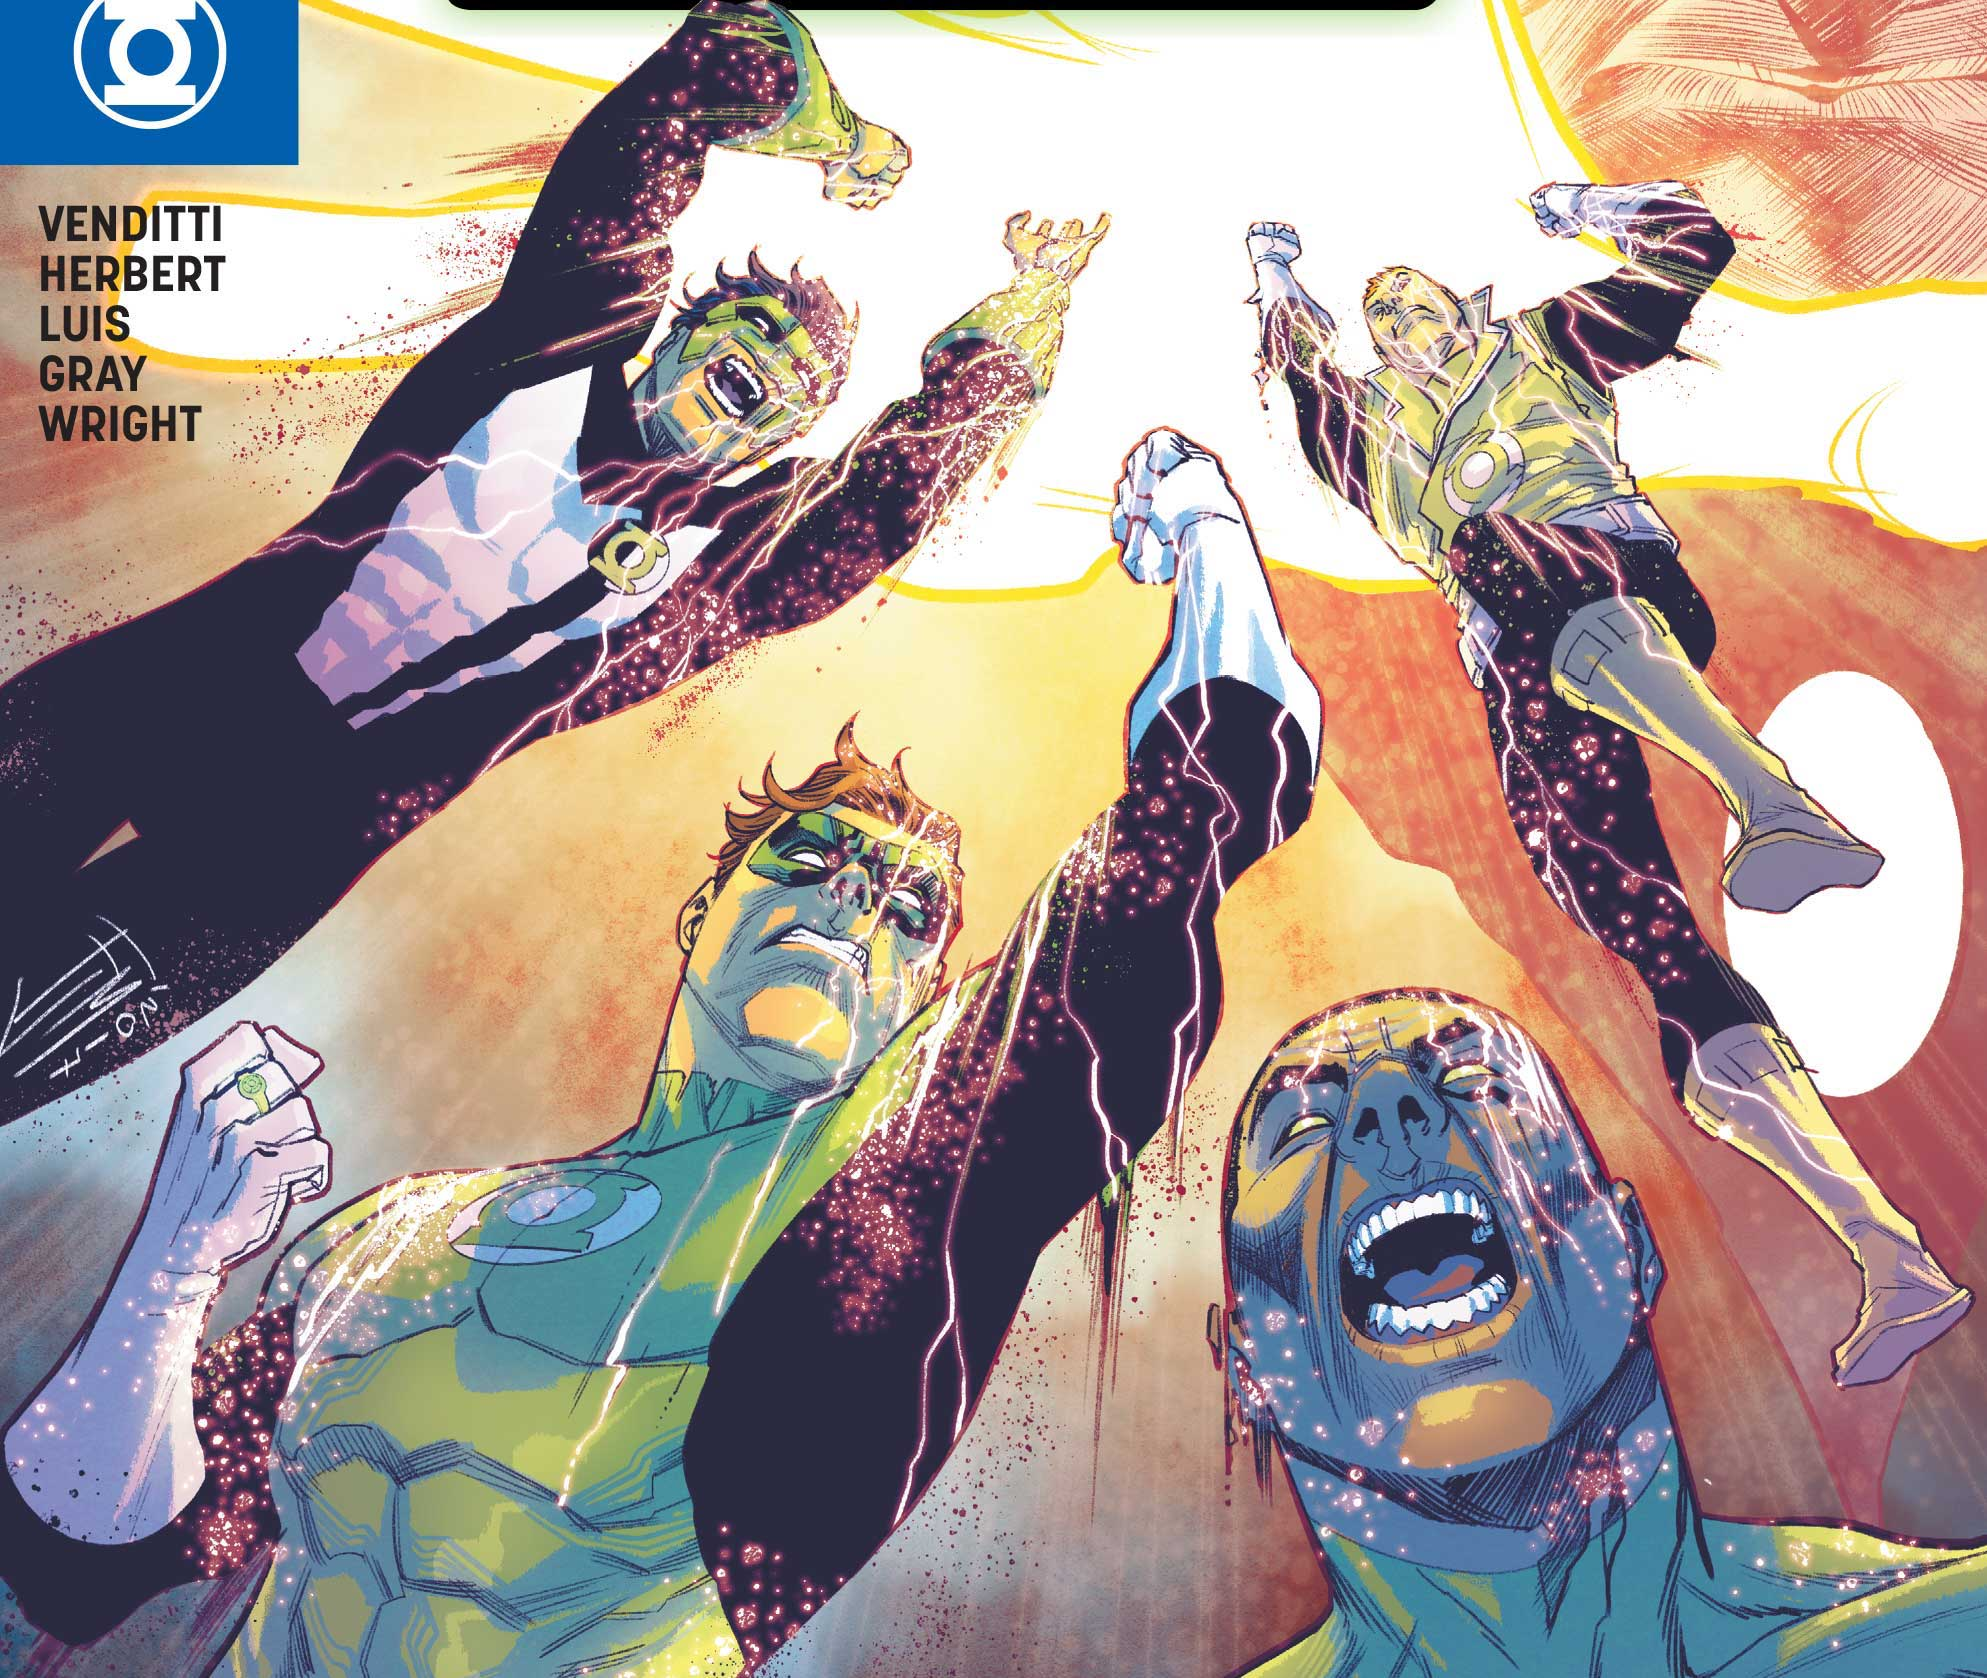 [EXCLUSIVE] DC Preview: Hal Jordan and the Green Lantern Corps #36